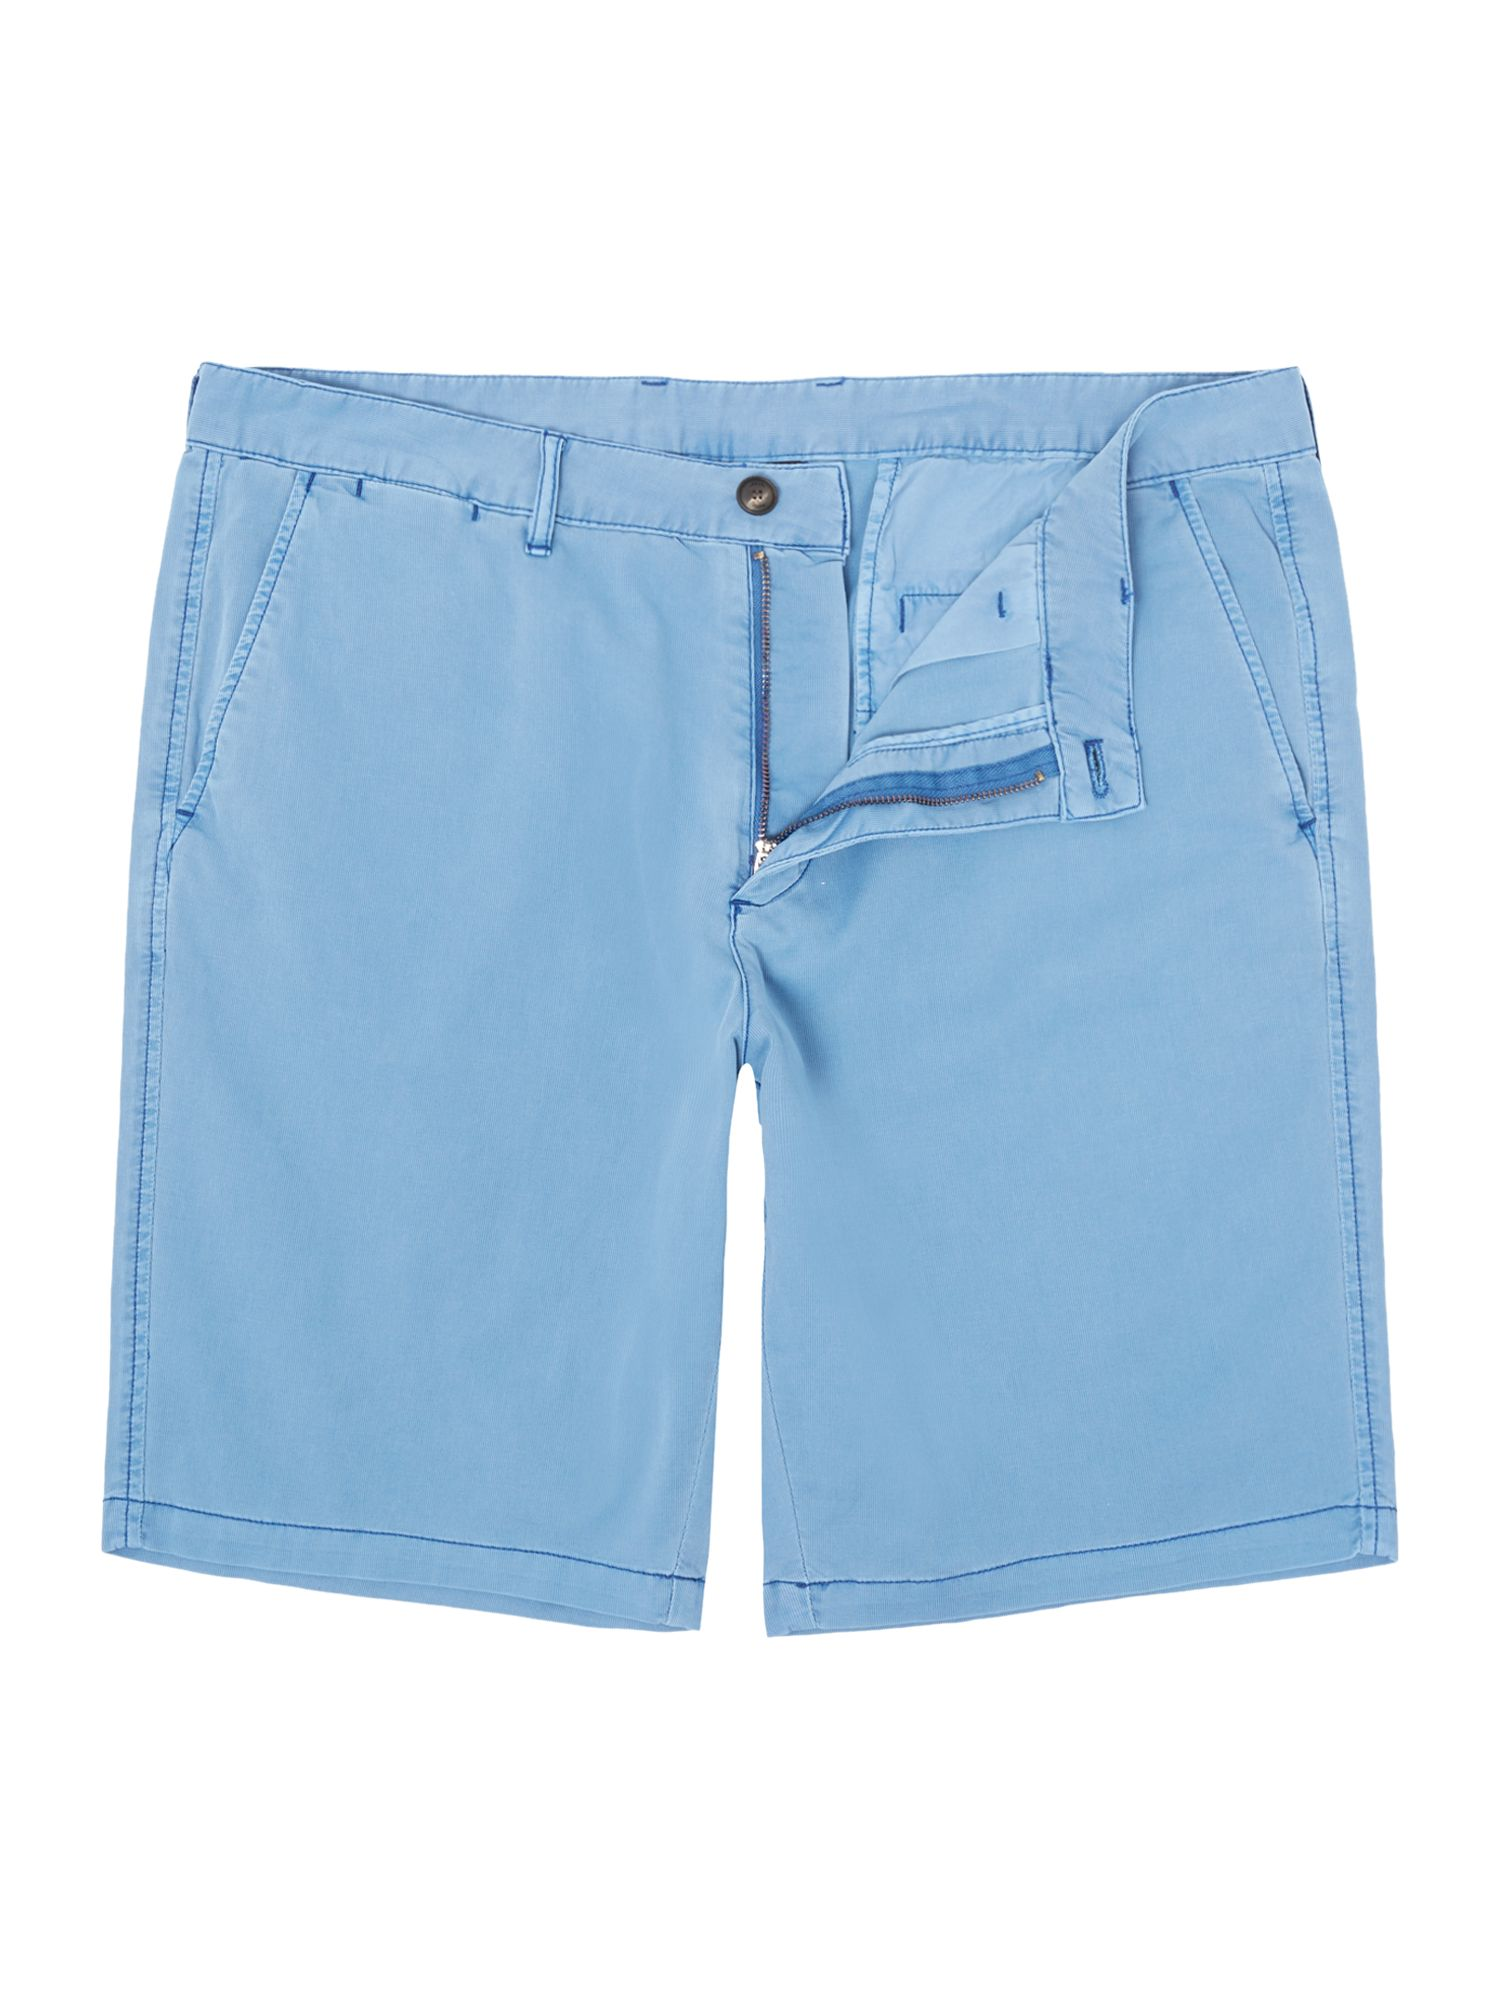 Mens Armani Jeans Twill shorts Light Blue